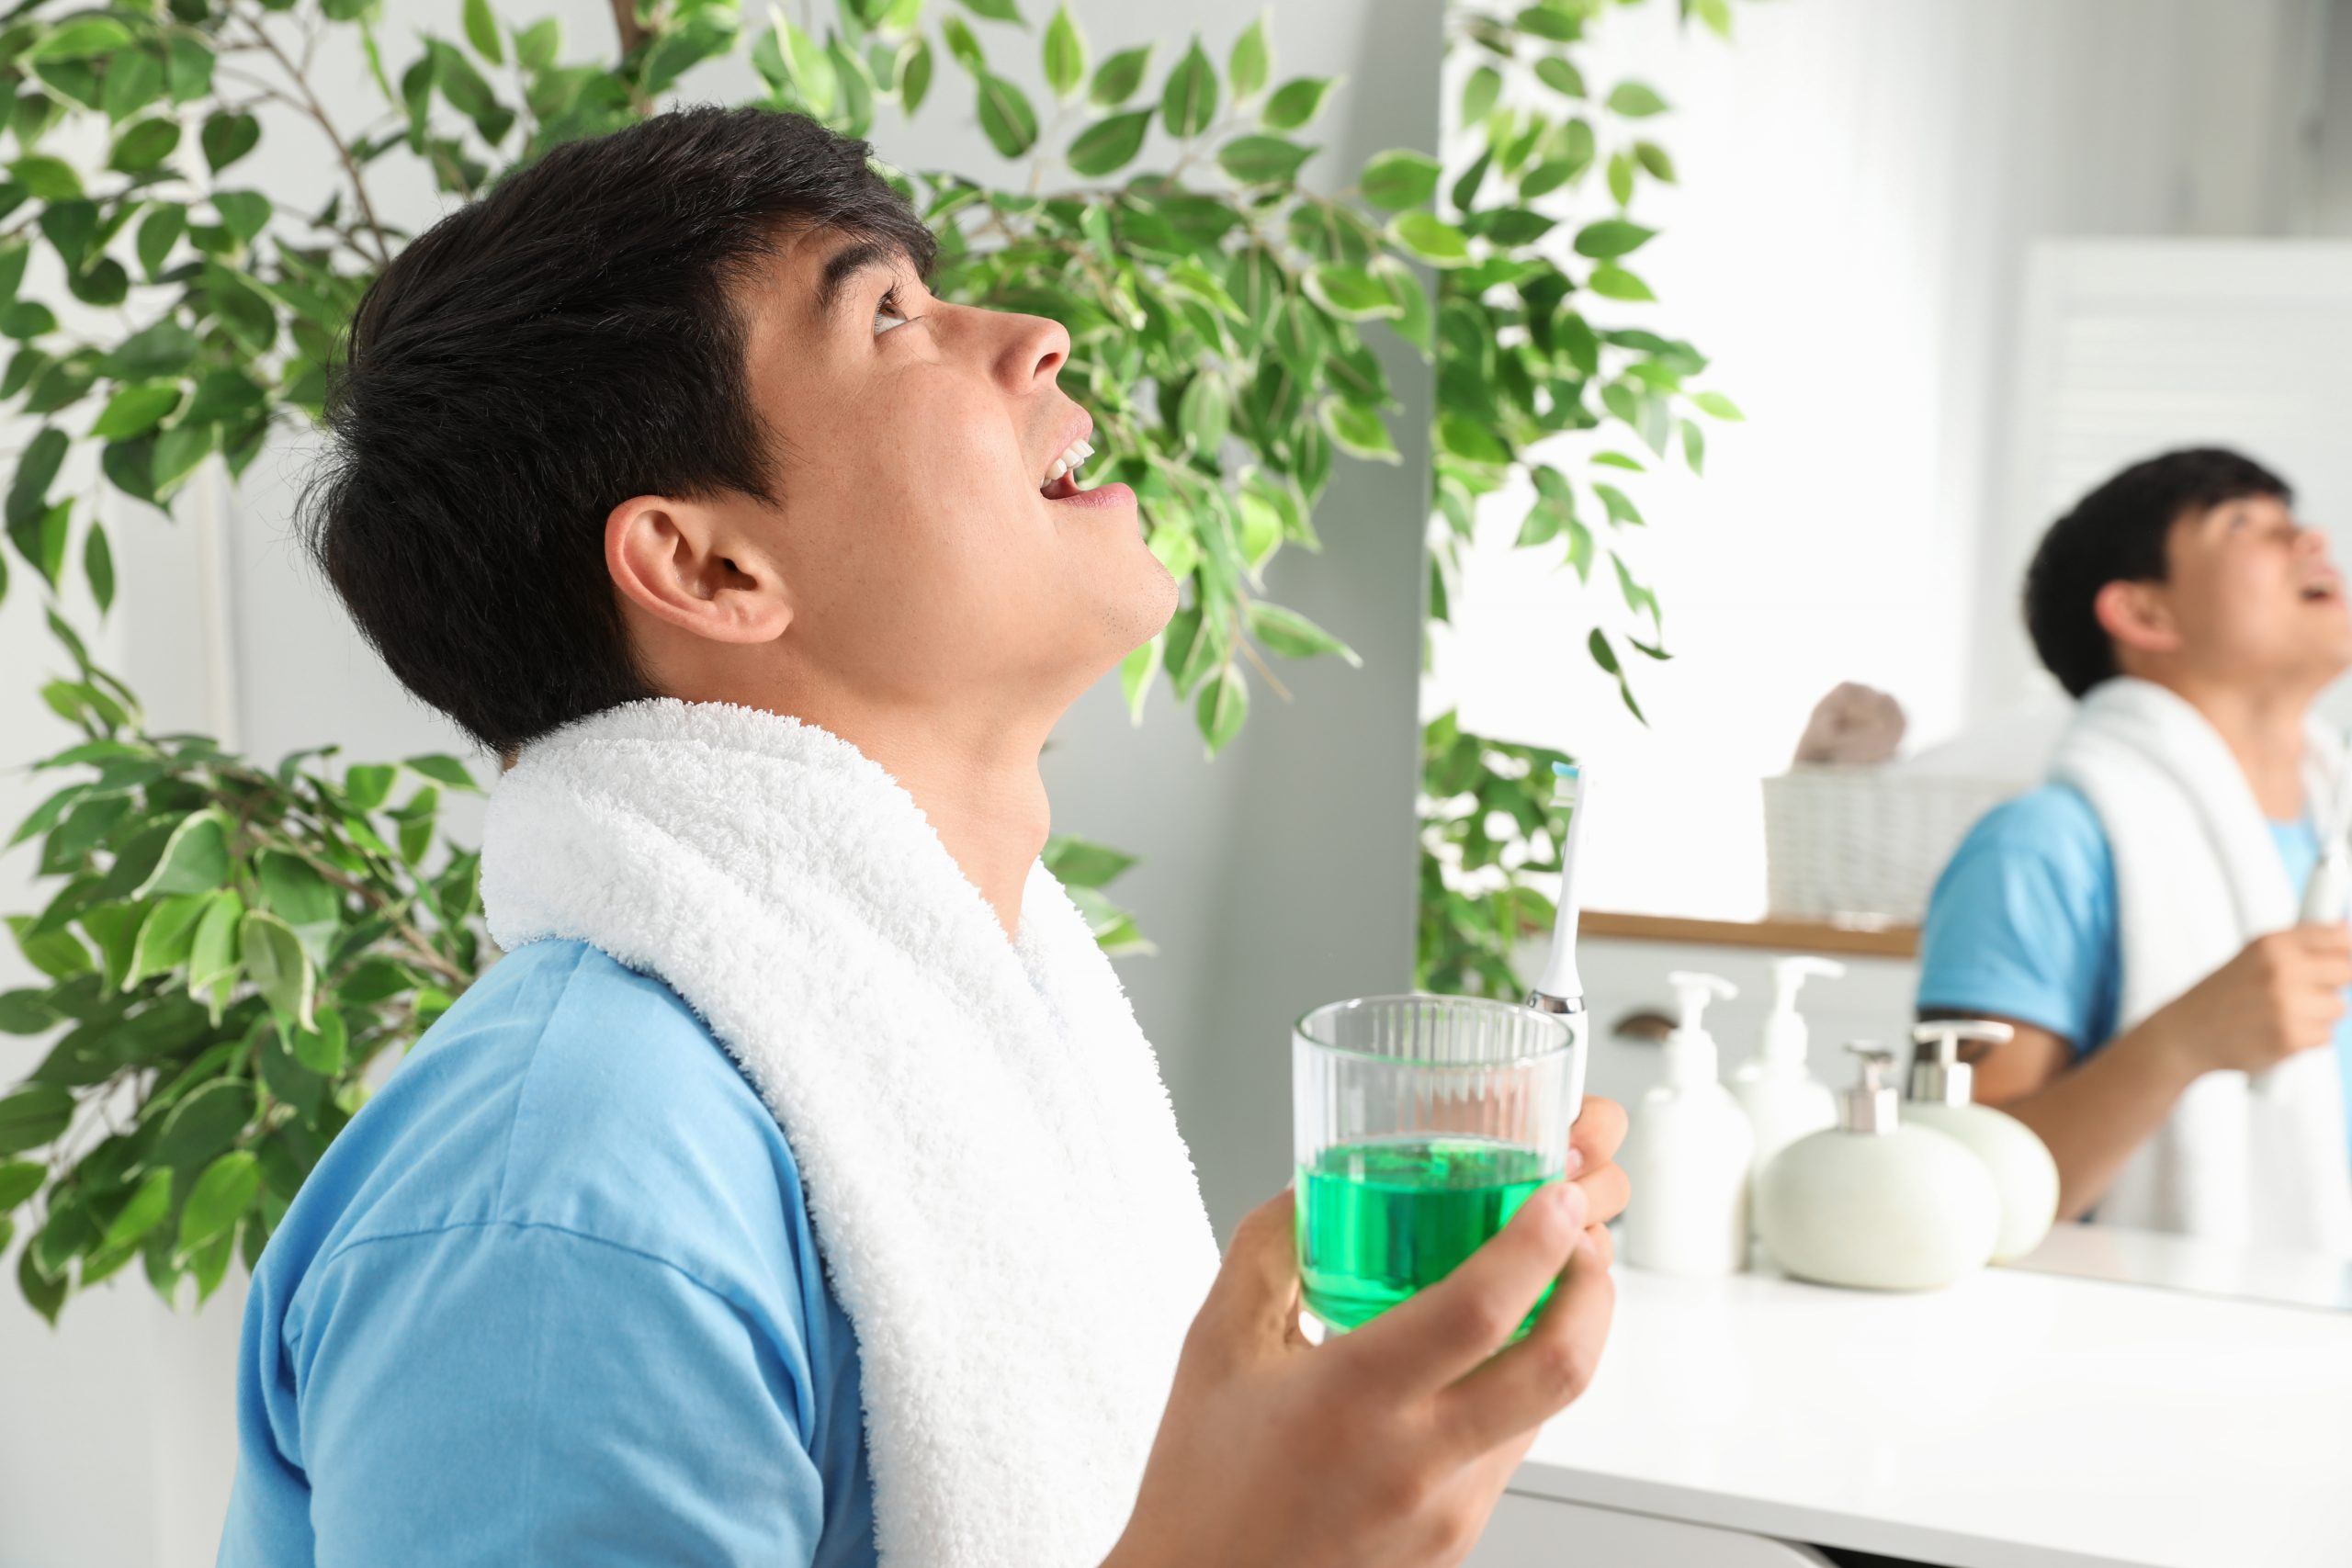 Why Should You Use Mouthwash As Part Of Your Regular Hygiene?